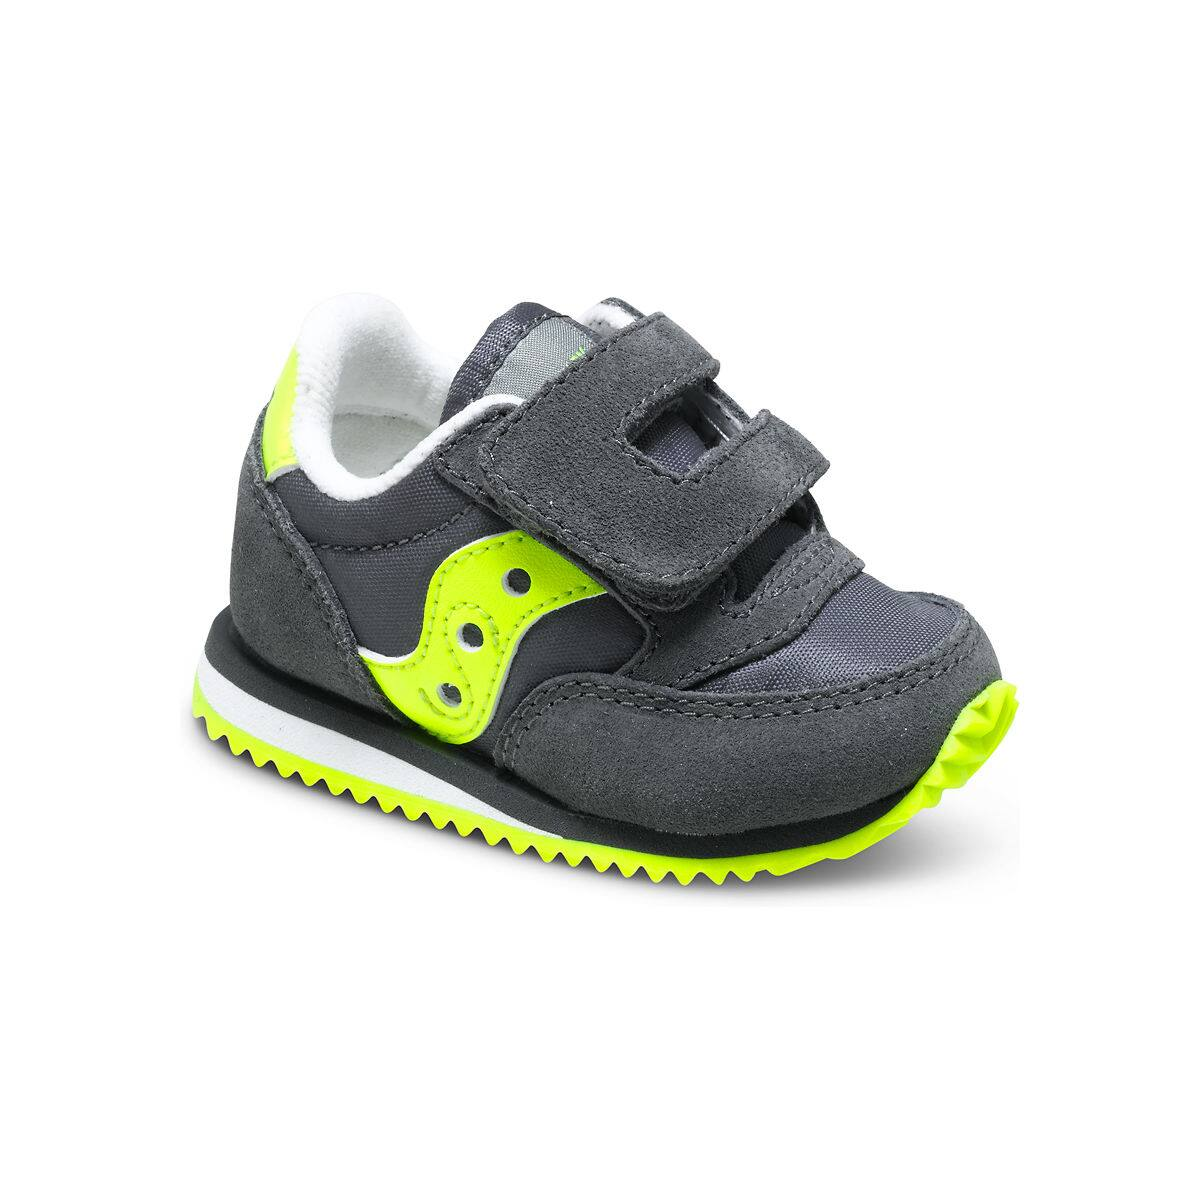 Stride Rite Children's Footwear Sale: Sandals from $10, Sneakers from $16, Boots from $18.95 & More + Free Shipping